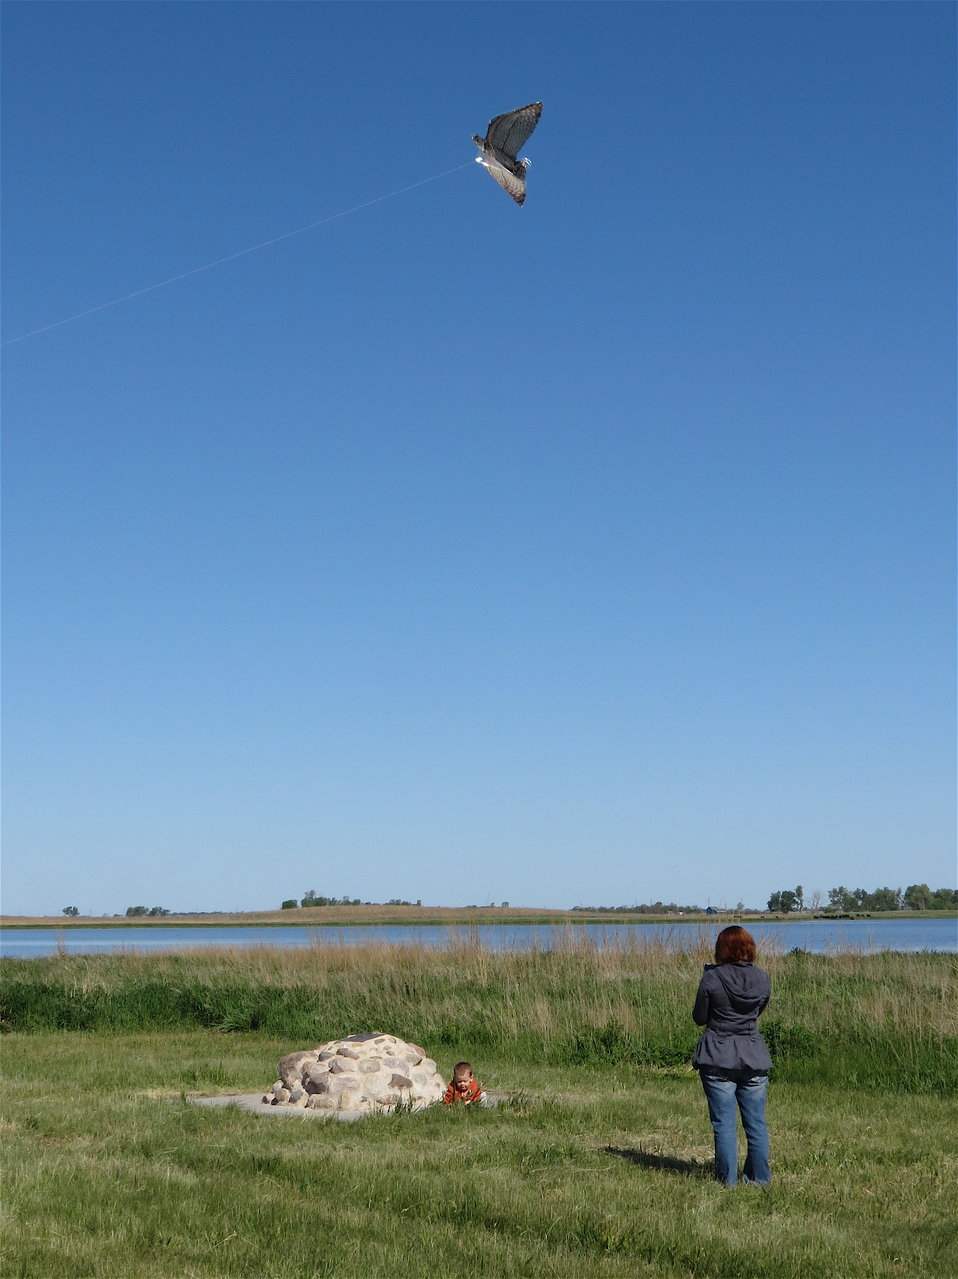 Kites in Flight 2012